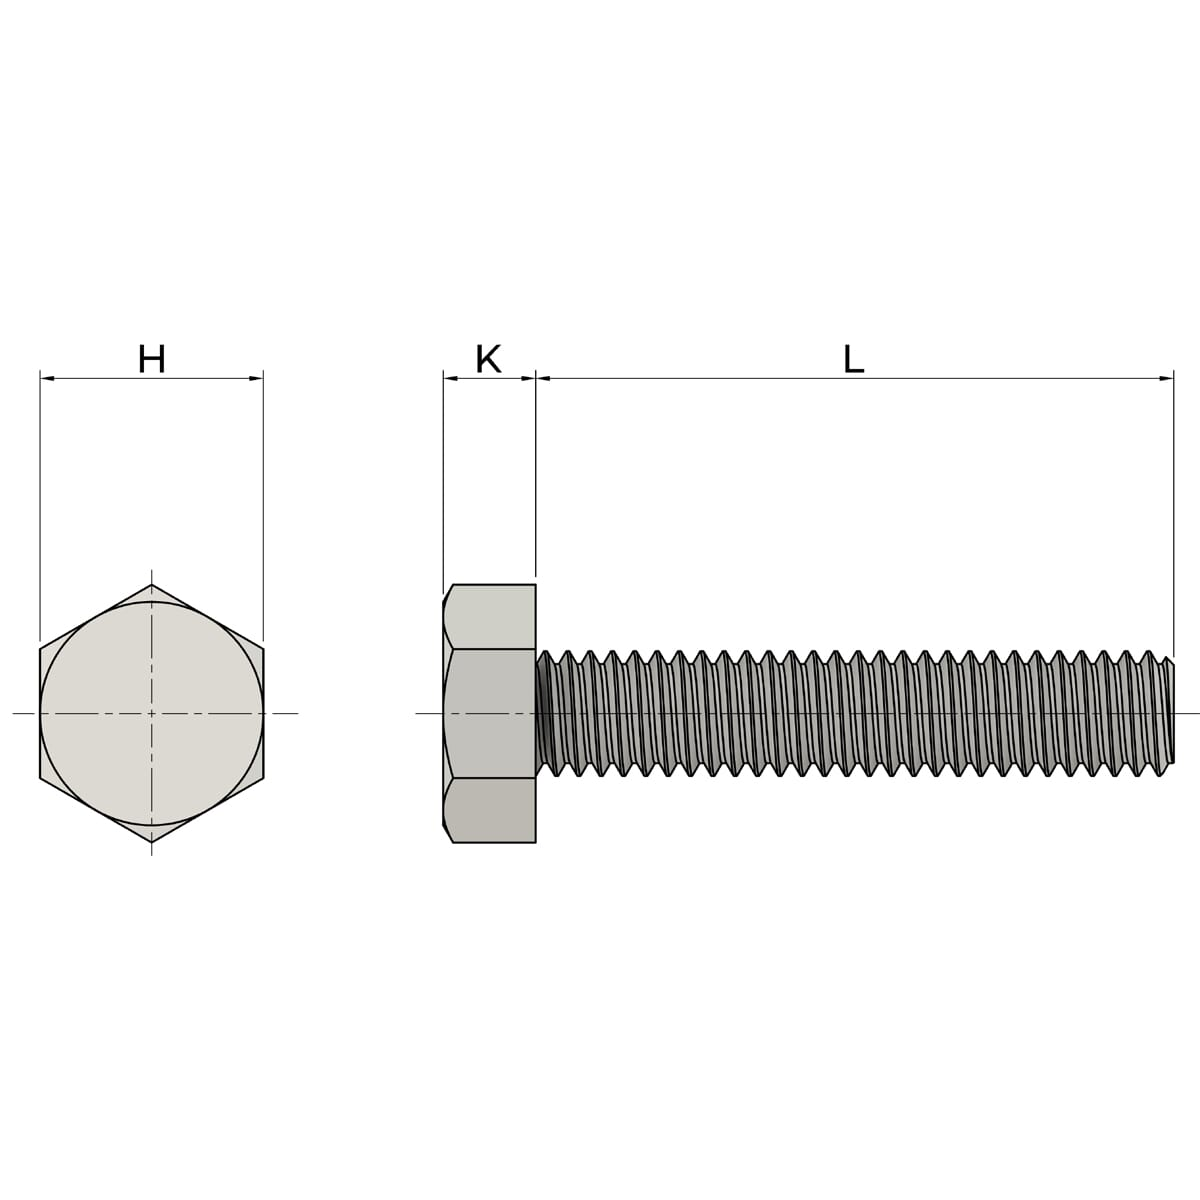 M8 x 75mm Full Thread Hexagon Bolts (DIN 933) - Marine Stainless Steel (A4) Drawing